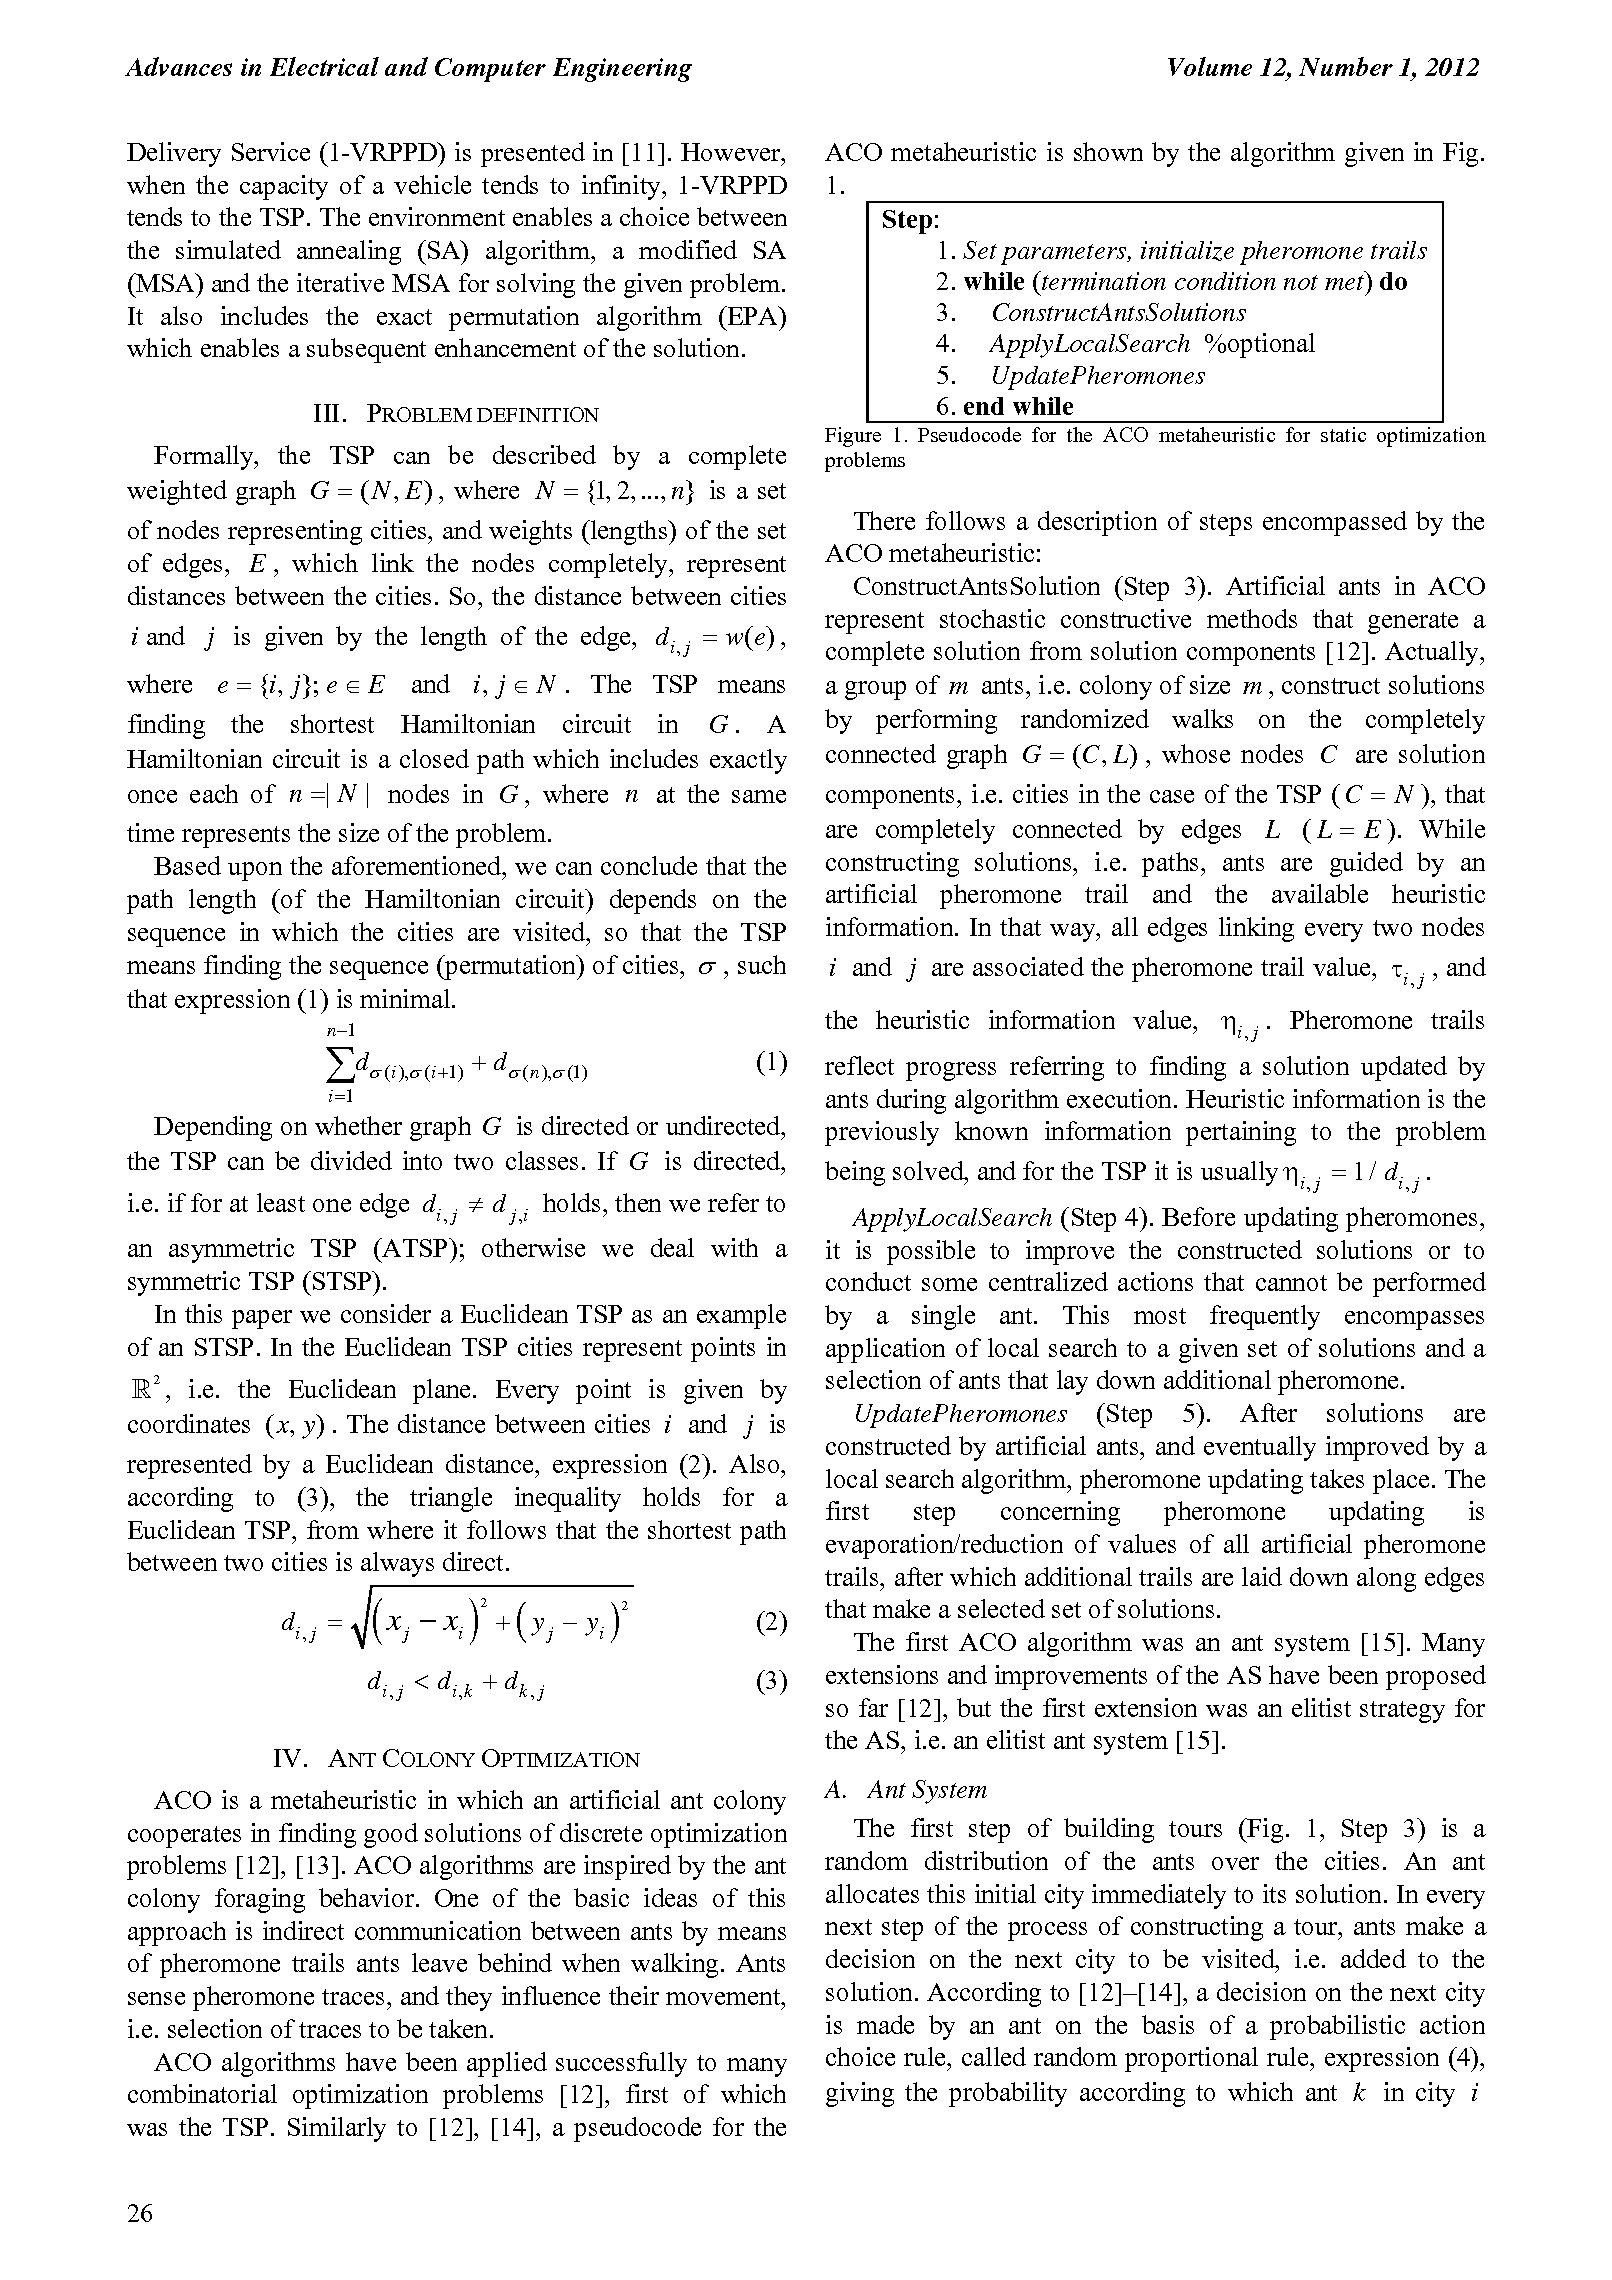 PDF Quickview for paper with DOI:10.4316/AECE.2012.01005